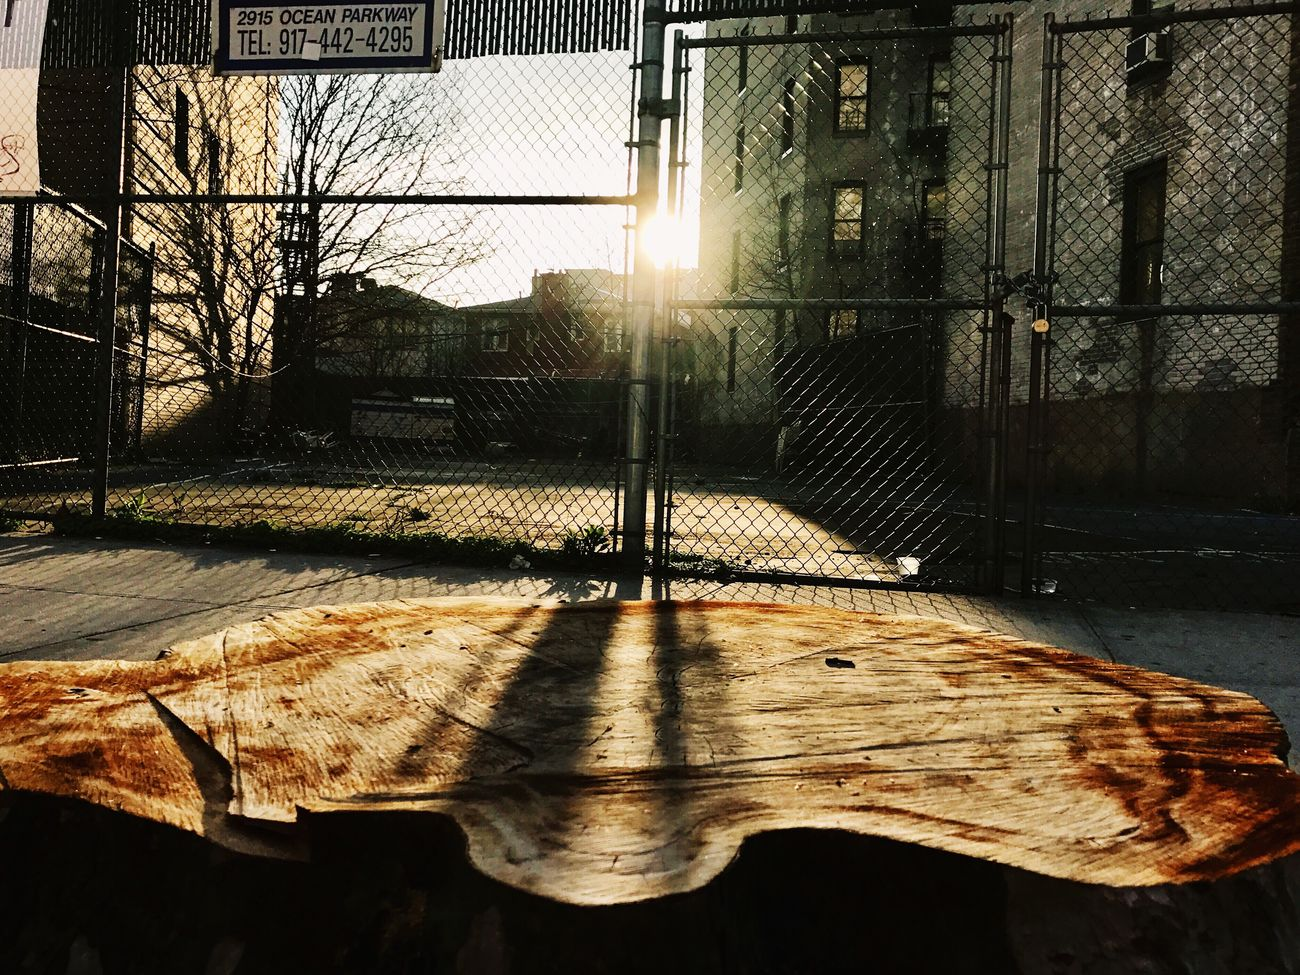 "Break The Mold ""Urban Sunrise"" Sunlight Outdoors Close-up Architecture Iphone7 Streetphotography Iphonephoto Mobilephotography New York Brooklyn Snapseed Beauty In Nature IPhone Photography Photographer Photography ShotOnIphone VSCO Art Is Everywhere"